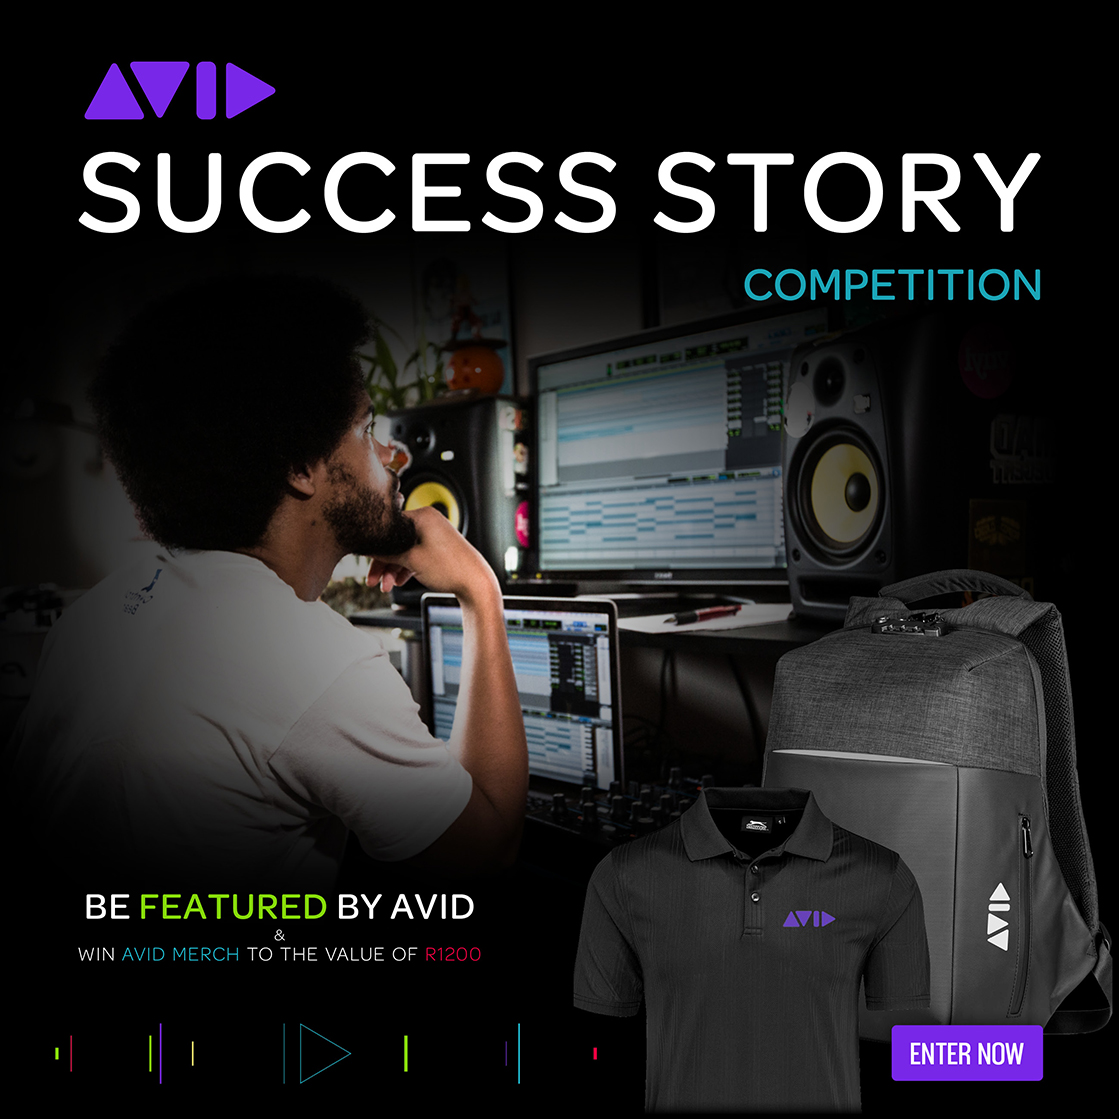 Avid Success Story Competition | Enter now!